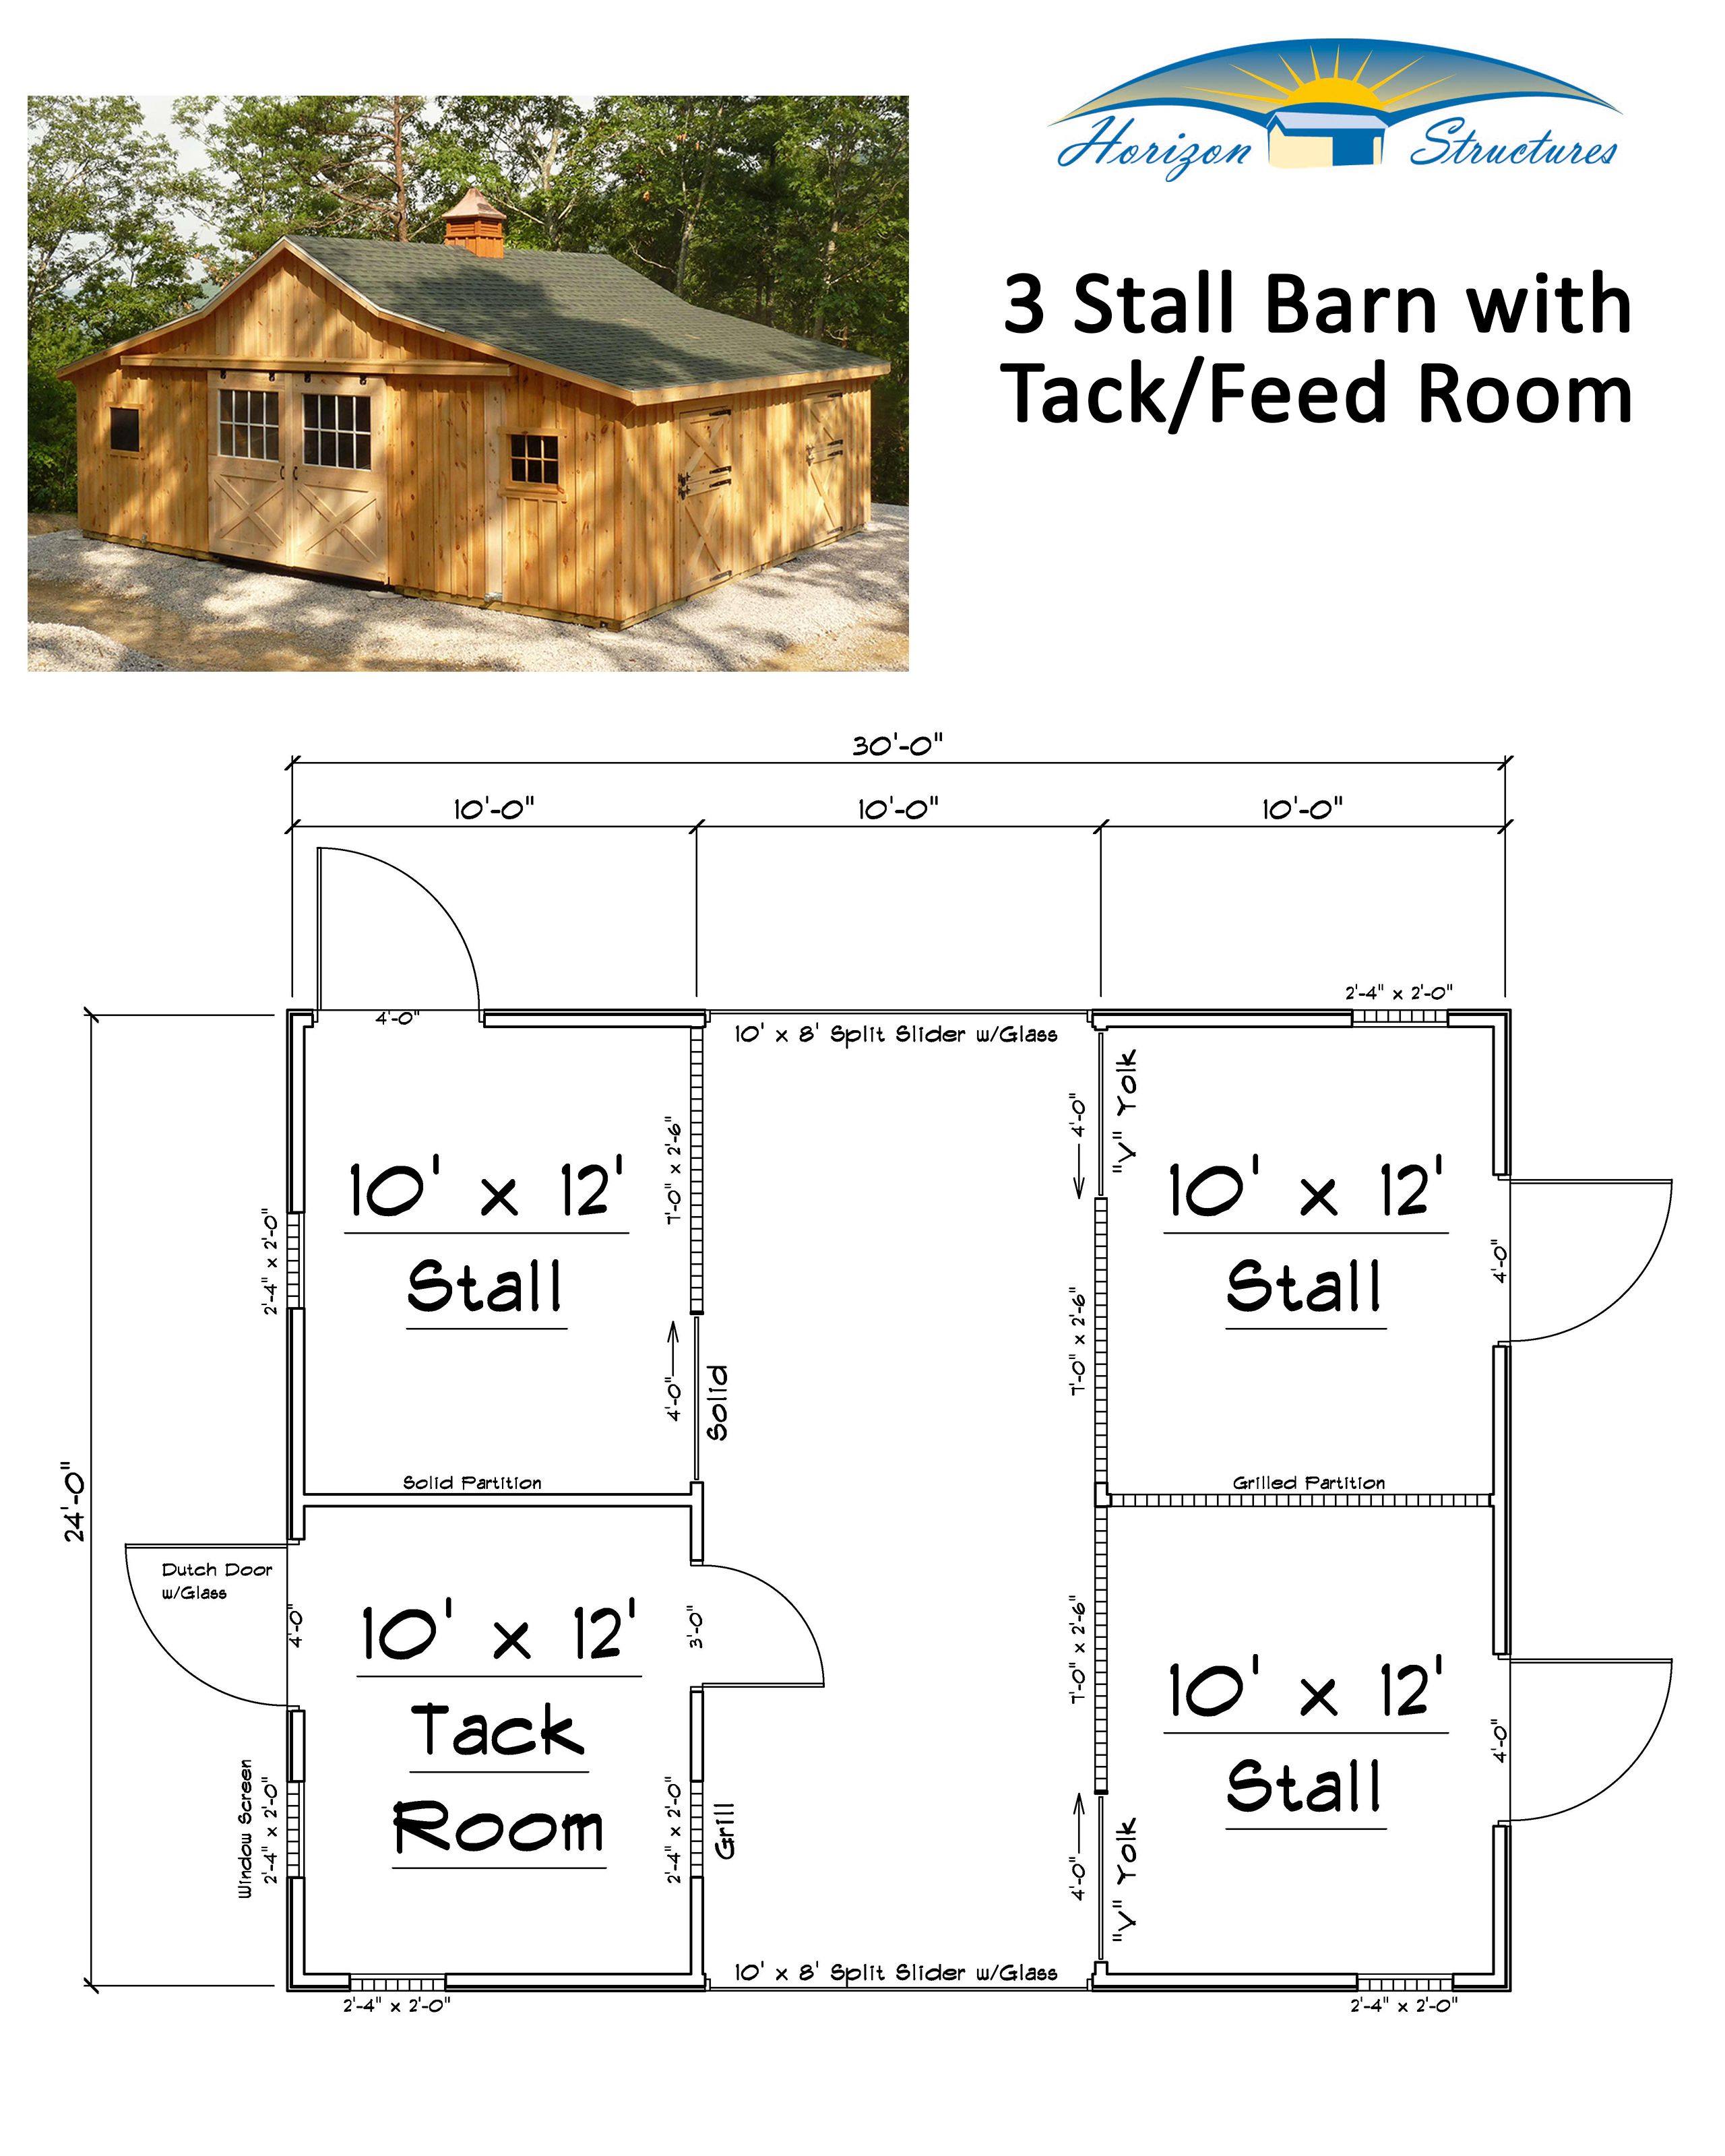 Charming 3 stall low profile raised center aisle modular for Horse barn prices and plans